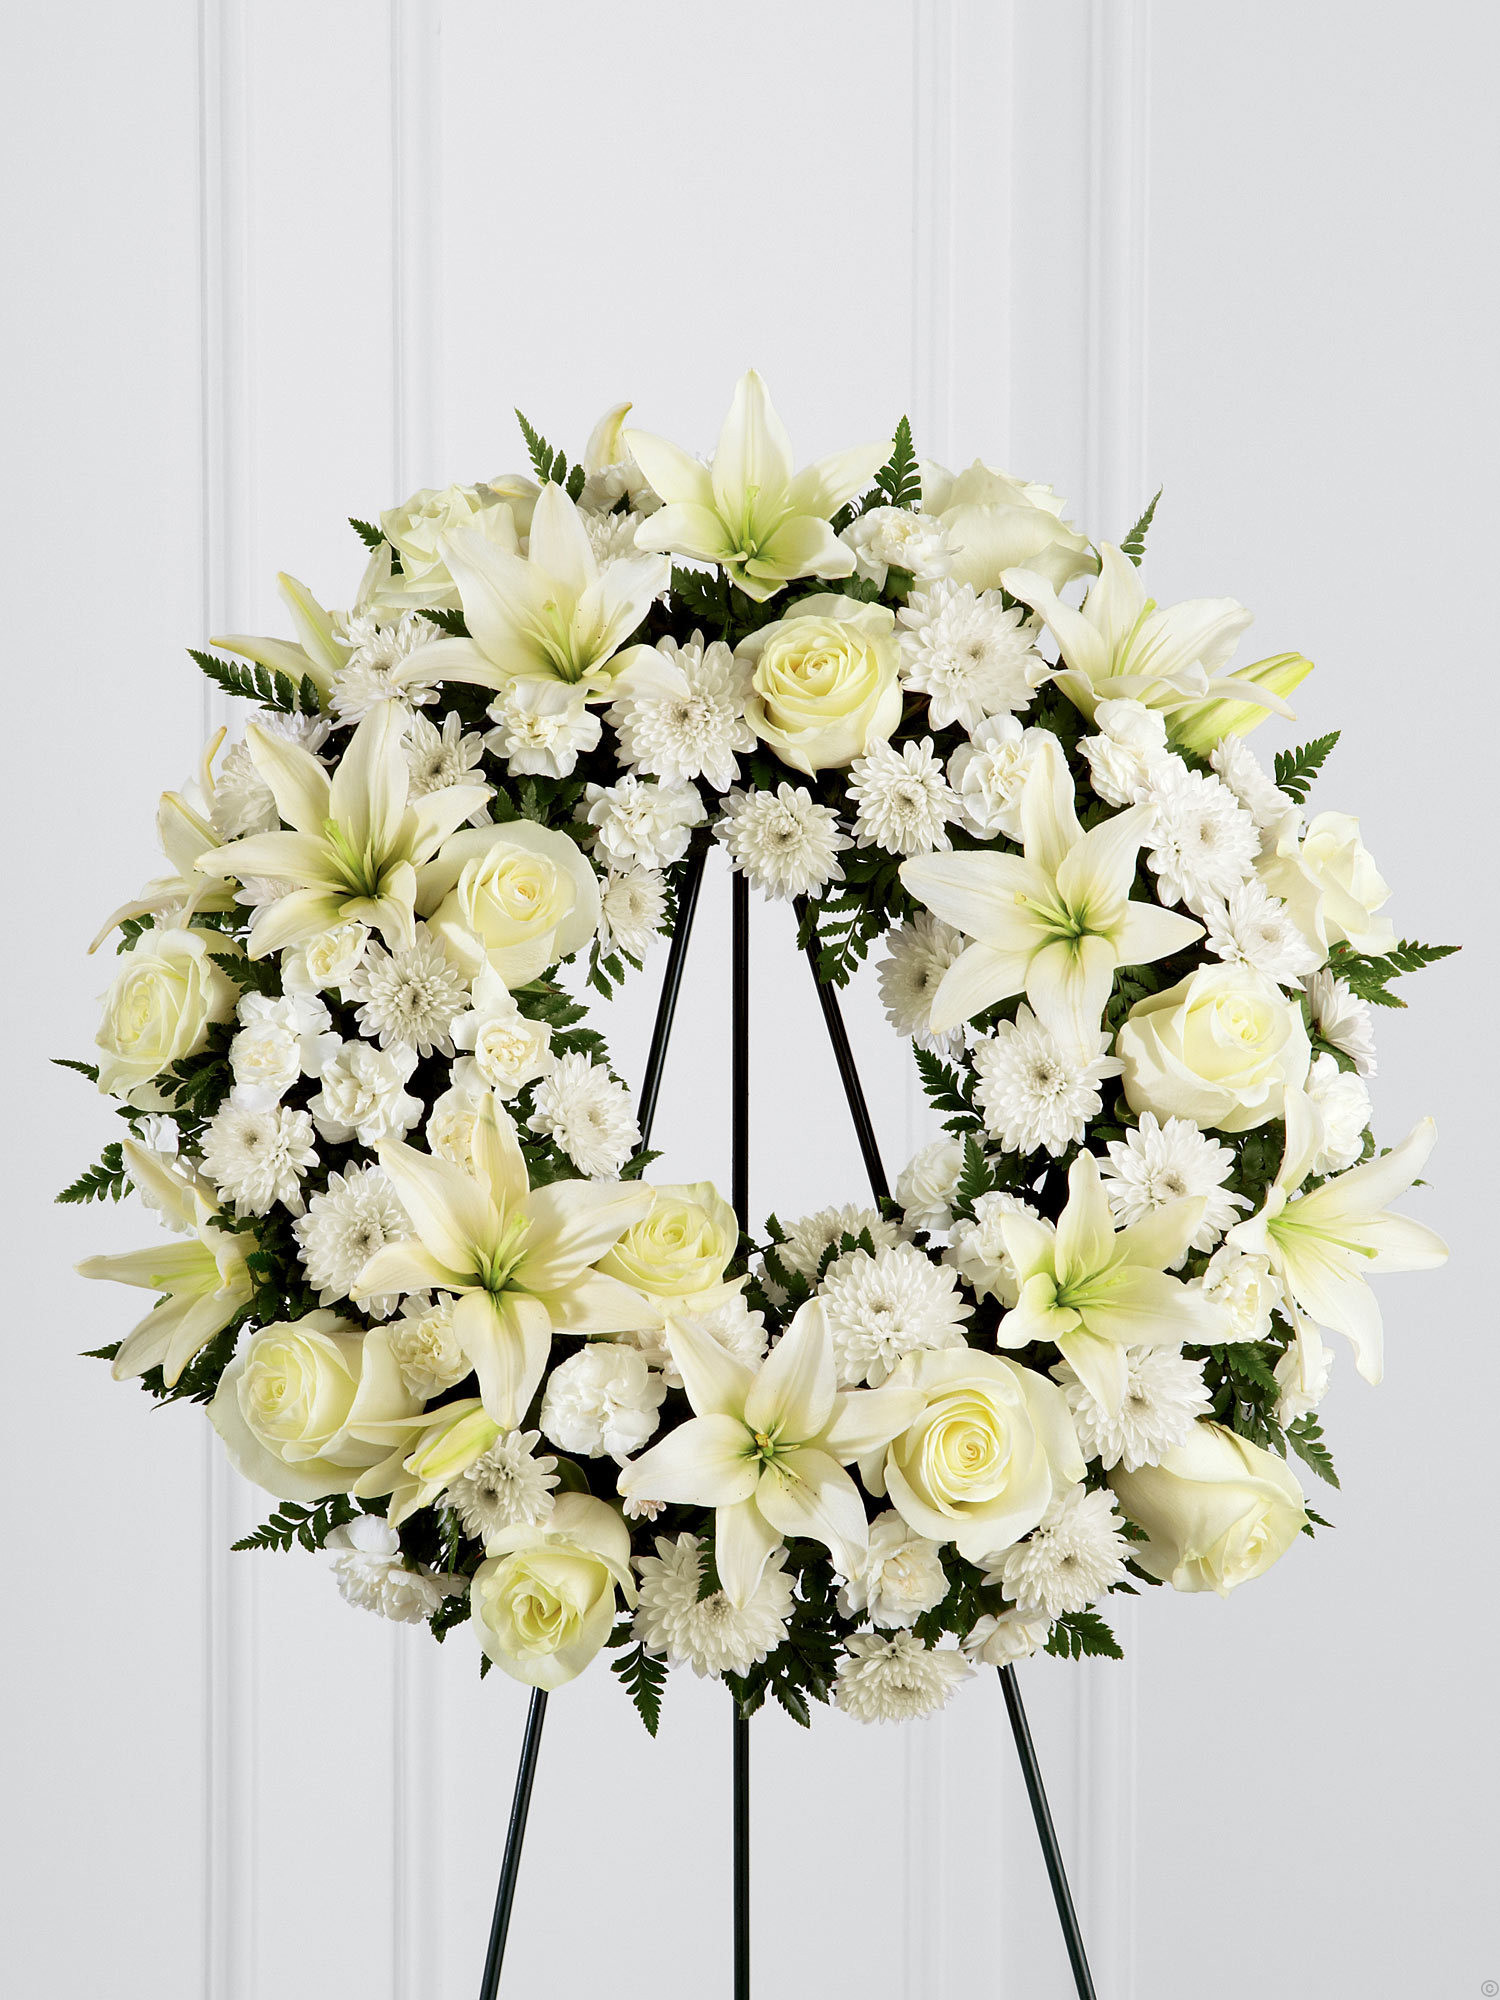 Funeral Sprays Cork Funeral Flowers From Mimosaflowers